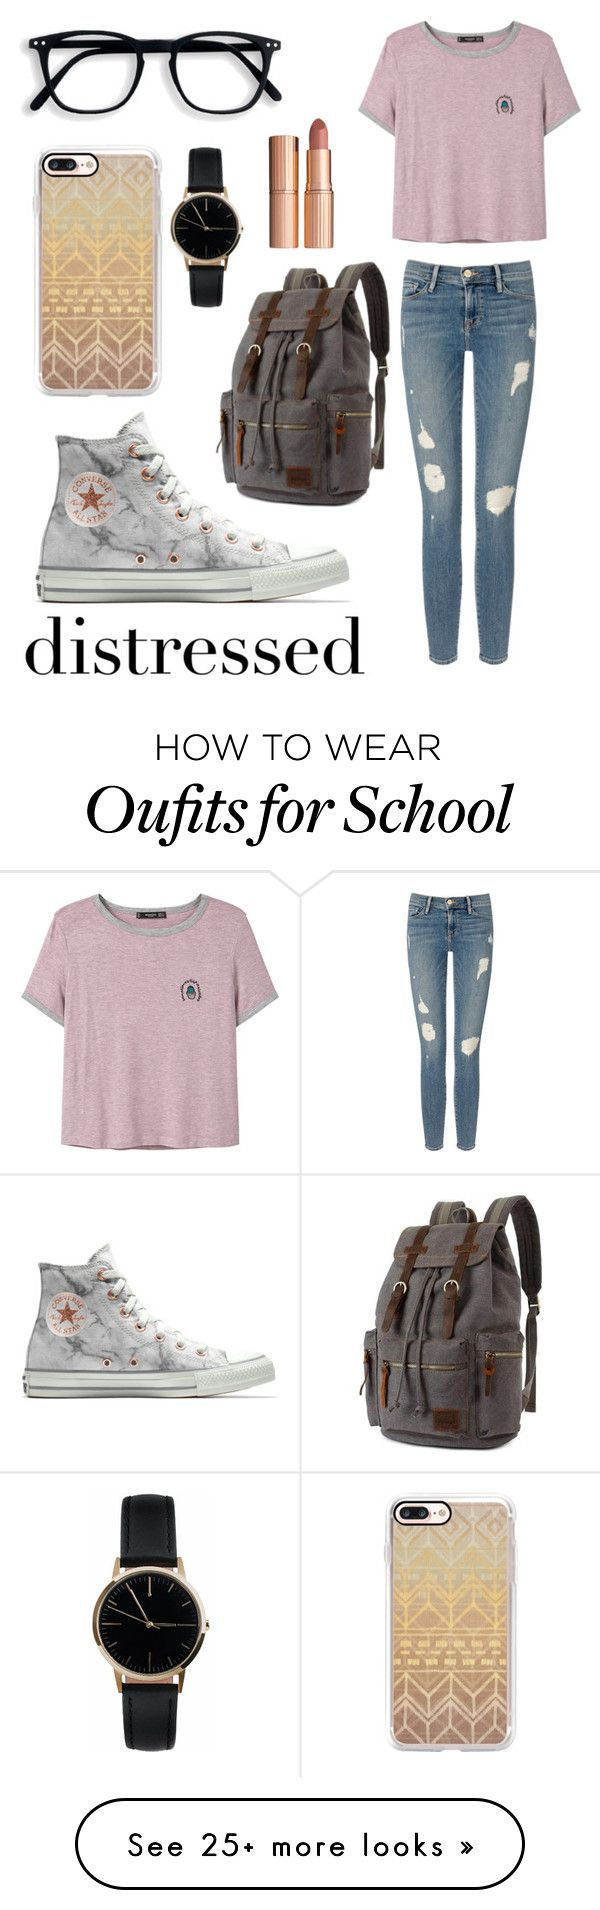 """""""Distressed"""" by adams-reagan-gca on Polyvore featuring Frame, MANGO, Converse, Casetify, Freedom To Exist and Charlotte Tilbury"""